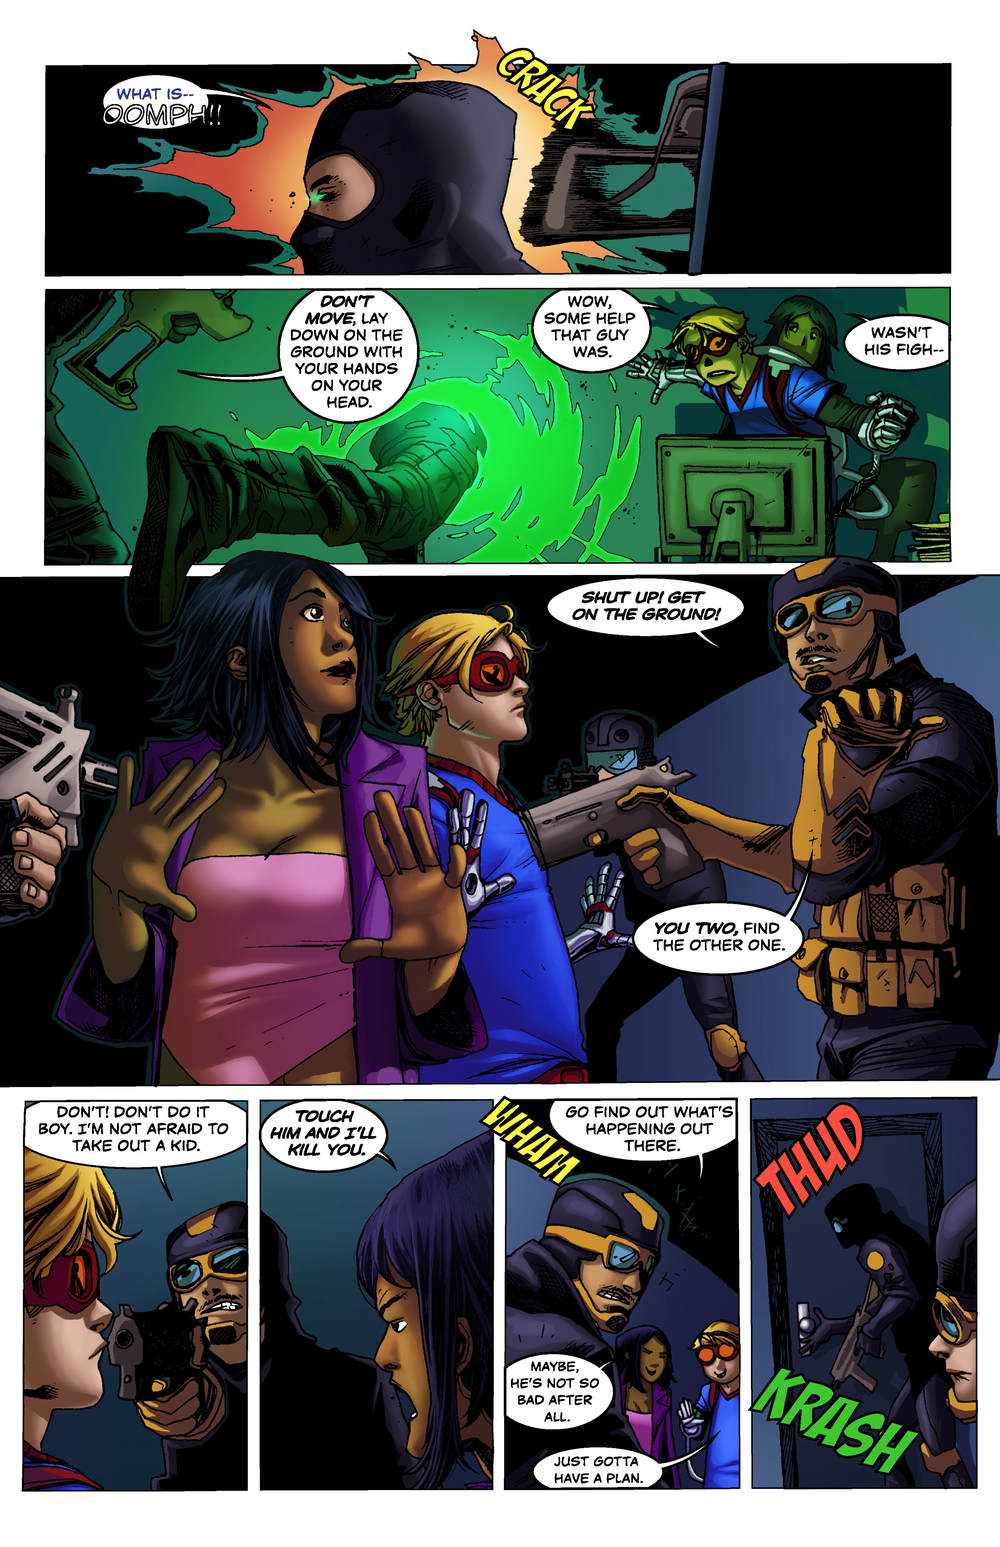 TT_Issue04_Digital_Page_28.jpg